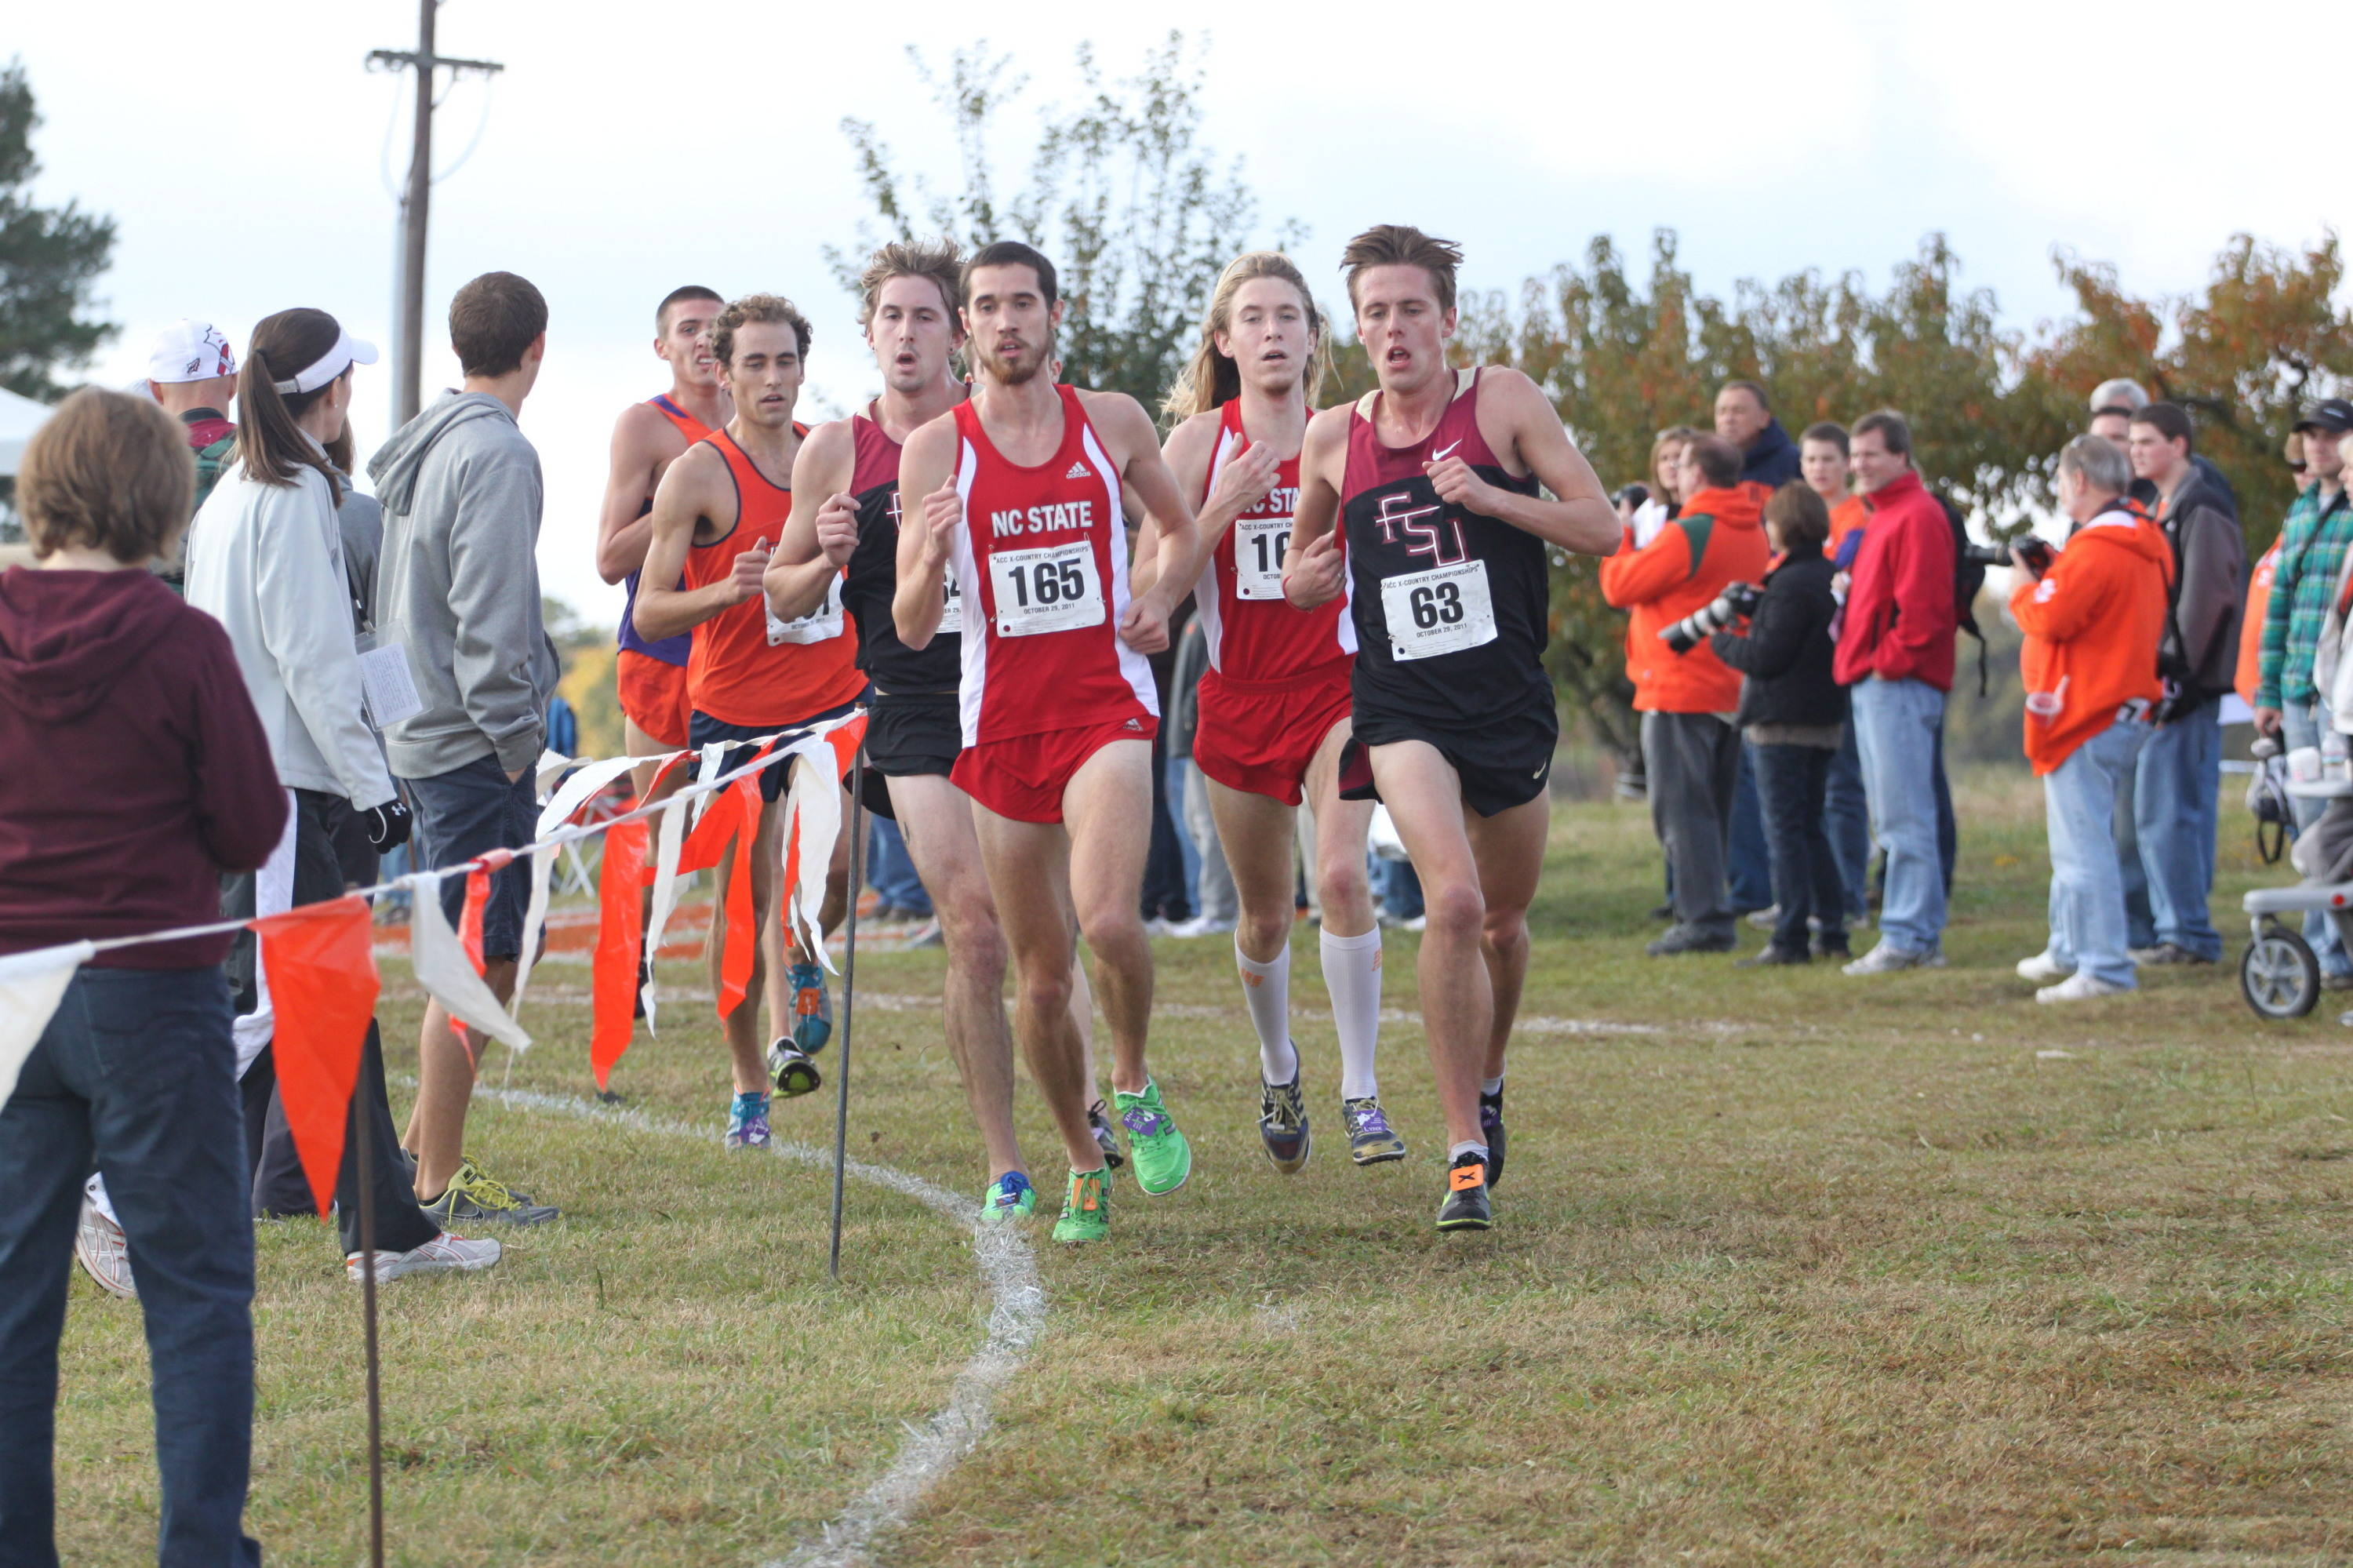 David Forrester (63)and NC State's Ryan Hill (165)pace a lead pack of six late in the race.